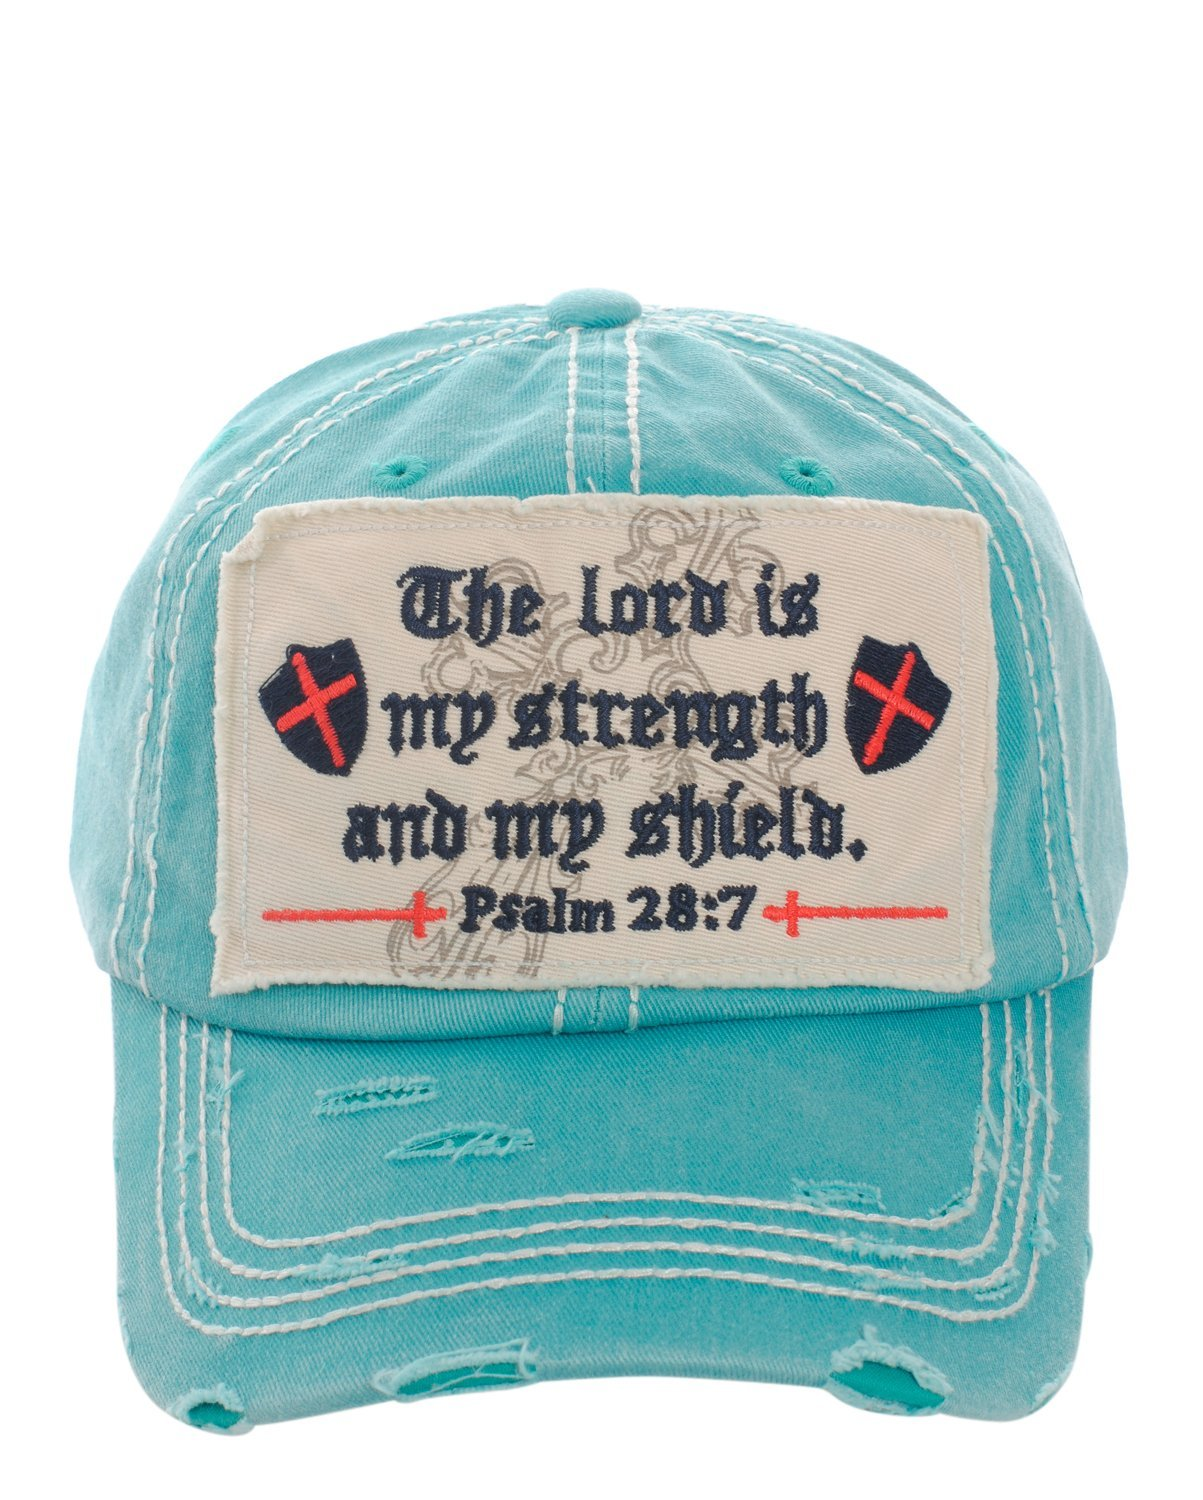 Distressed Vintage Style Bible Verse Psalm 28:7 Baseball Cap Hat Adjustable (Tur